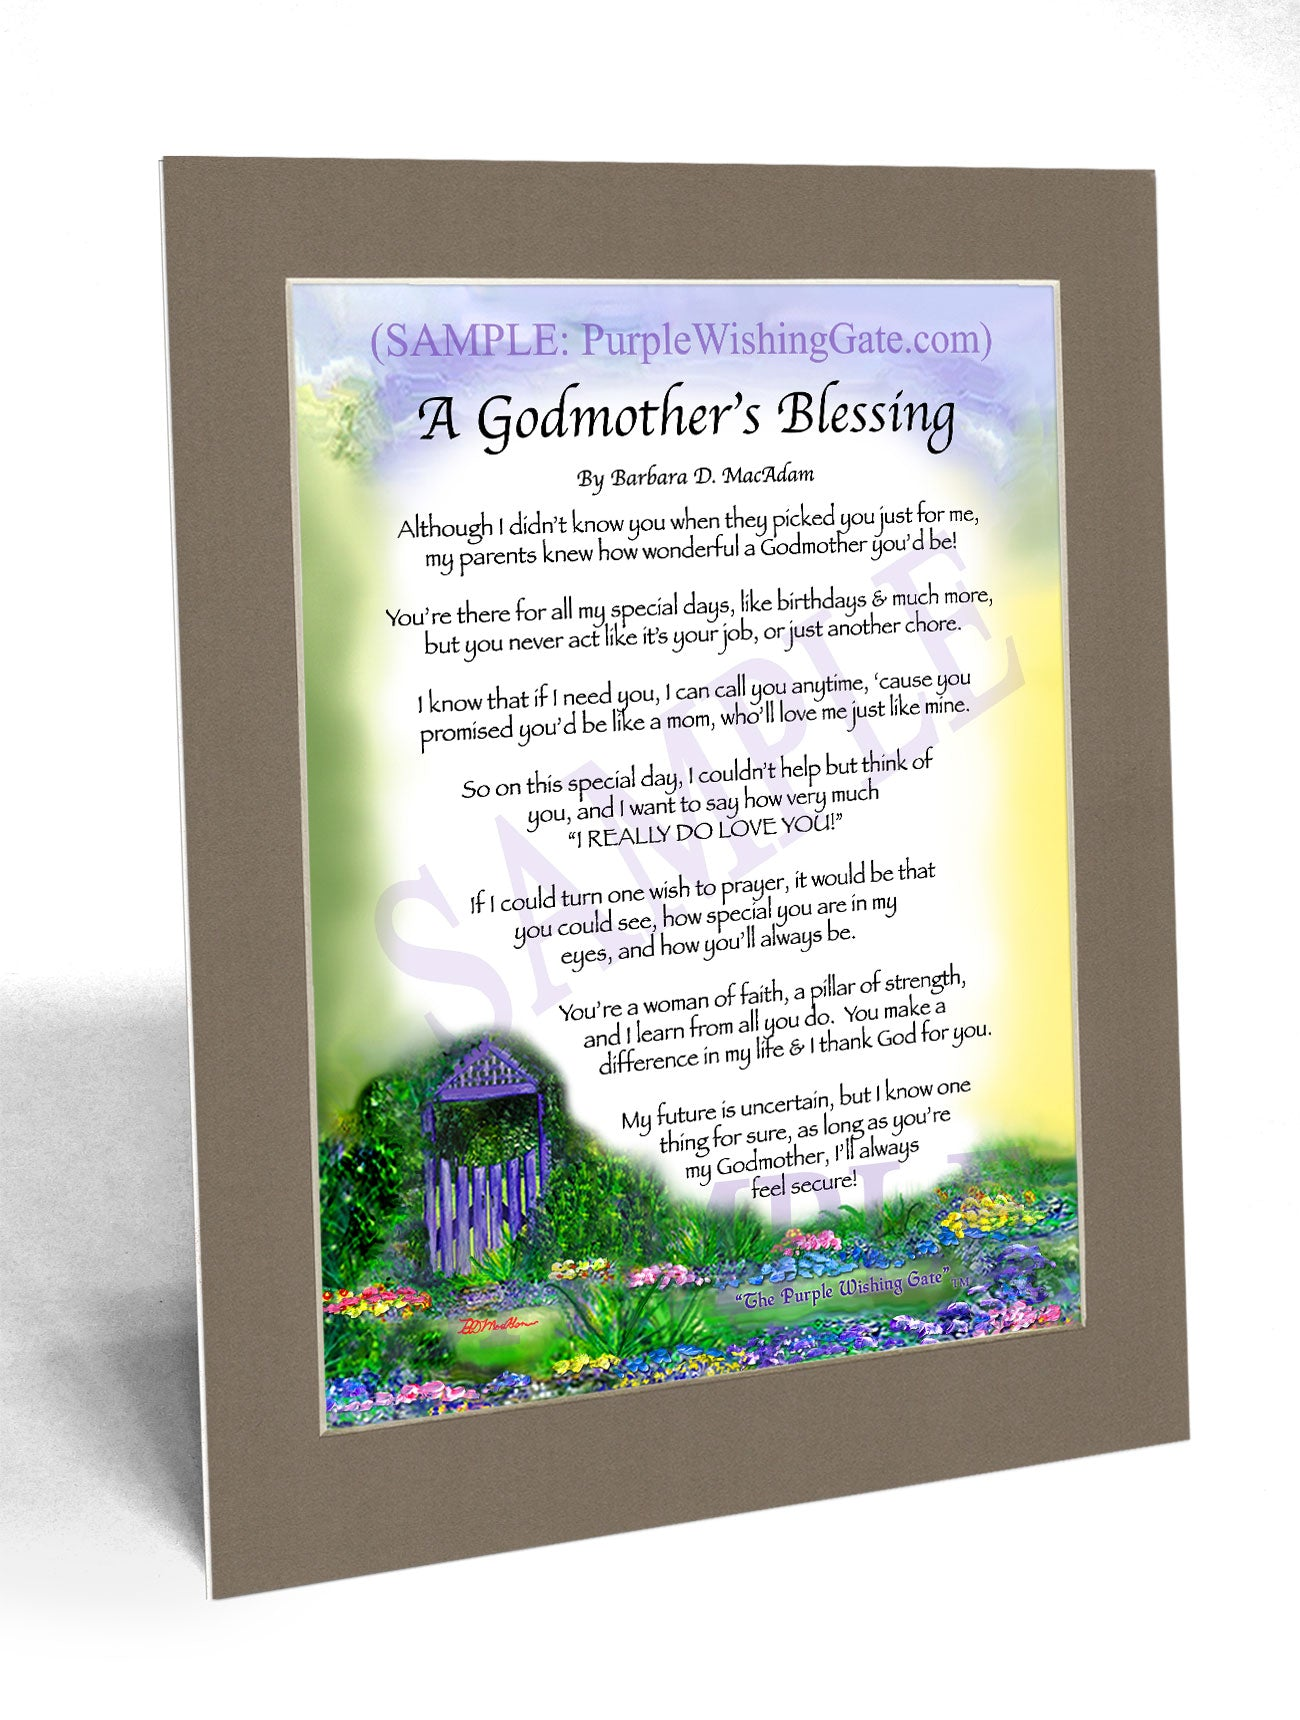 A Godmother's Blessing - Gifts for Godmother - PurpleWishingGate.com